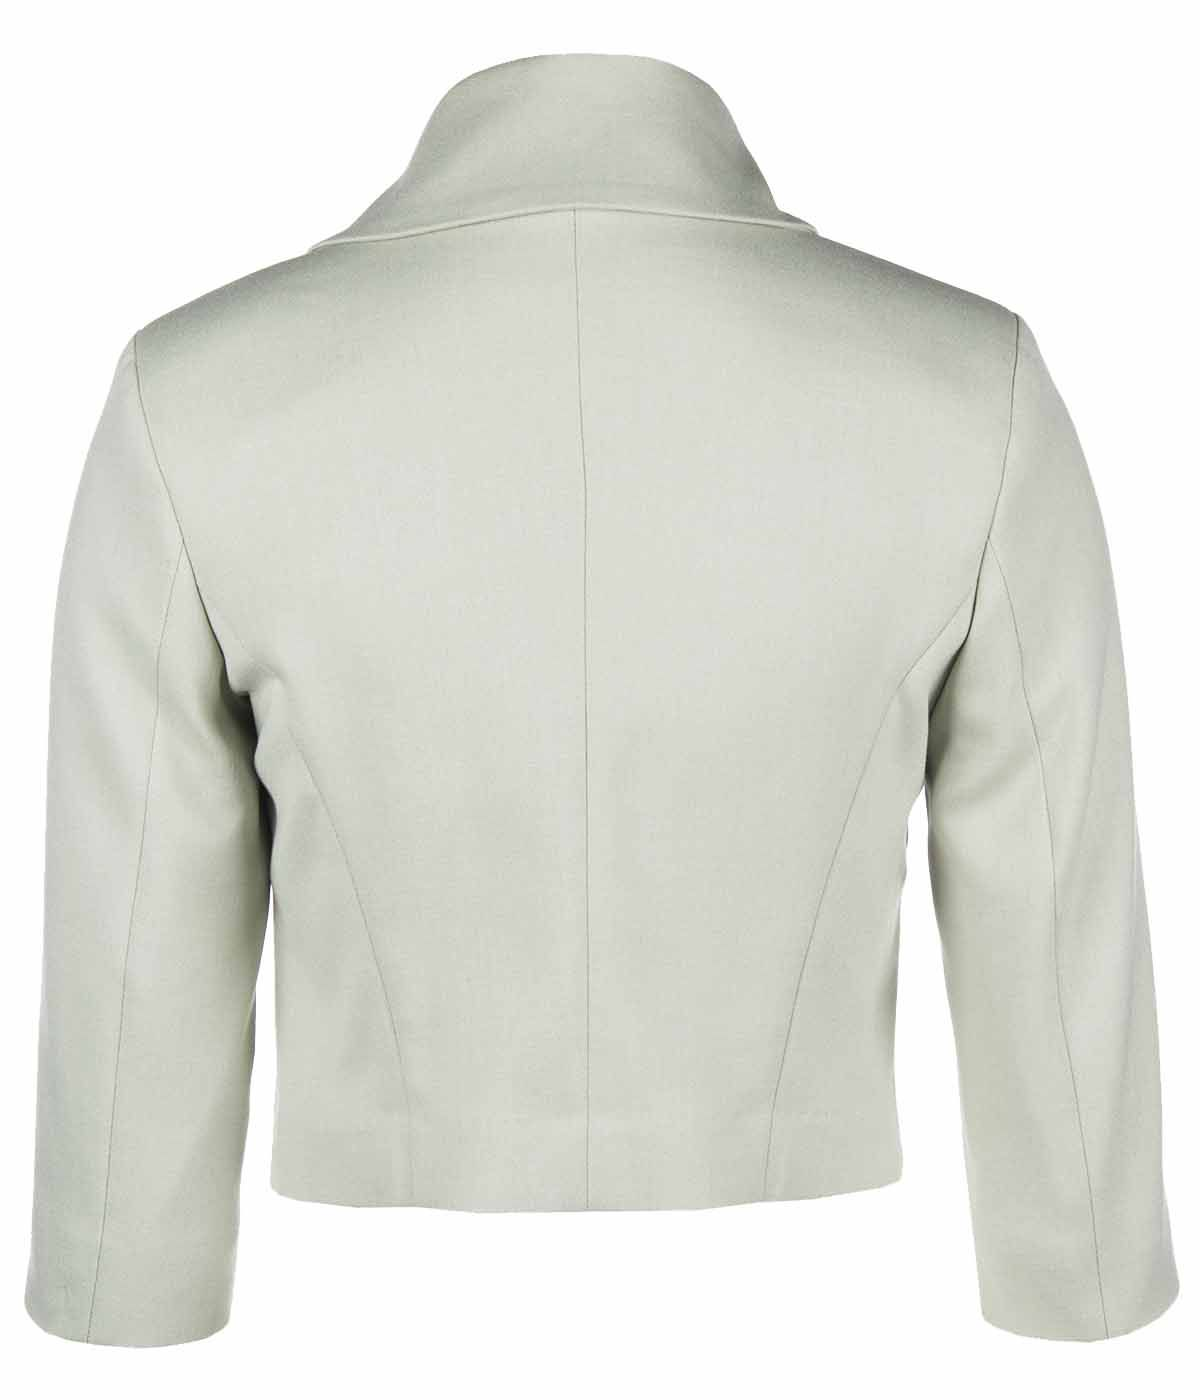 PALE GREEN BOLERO WITH ASYMMETRIC FRONT CLOSURE 1